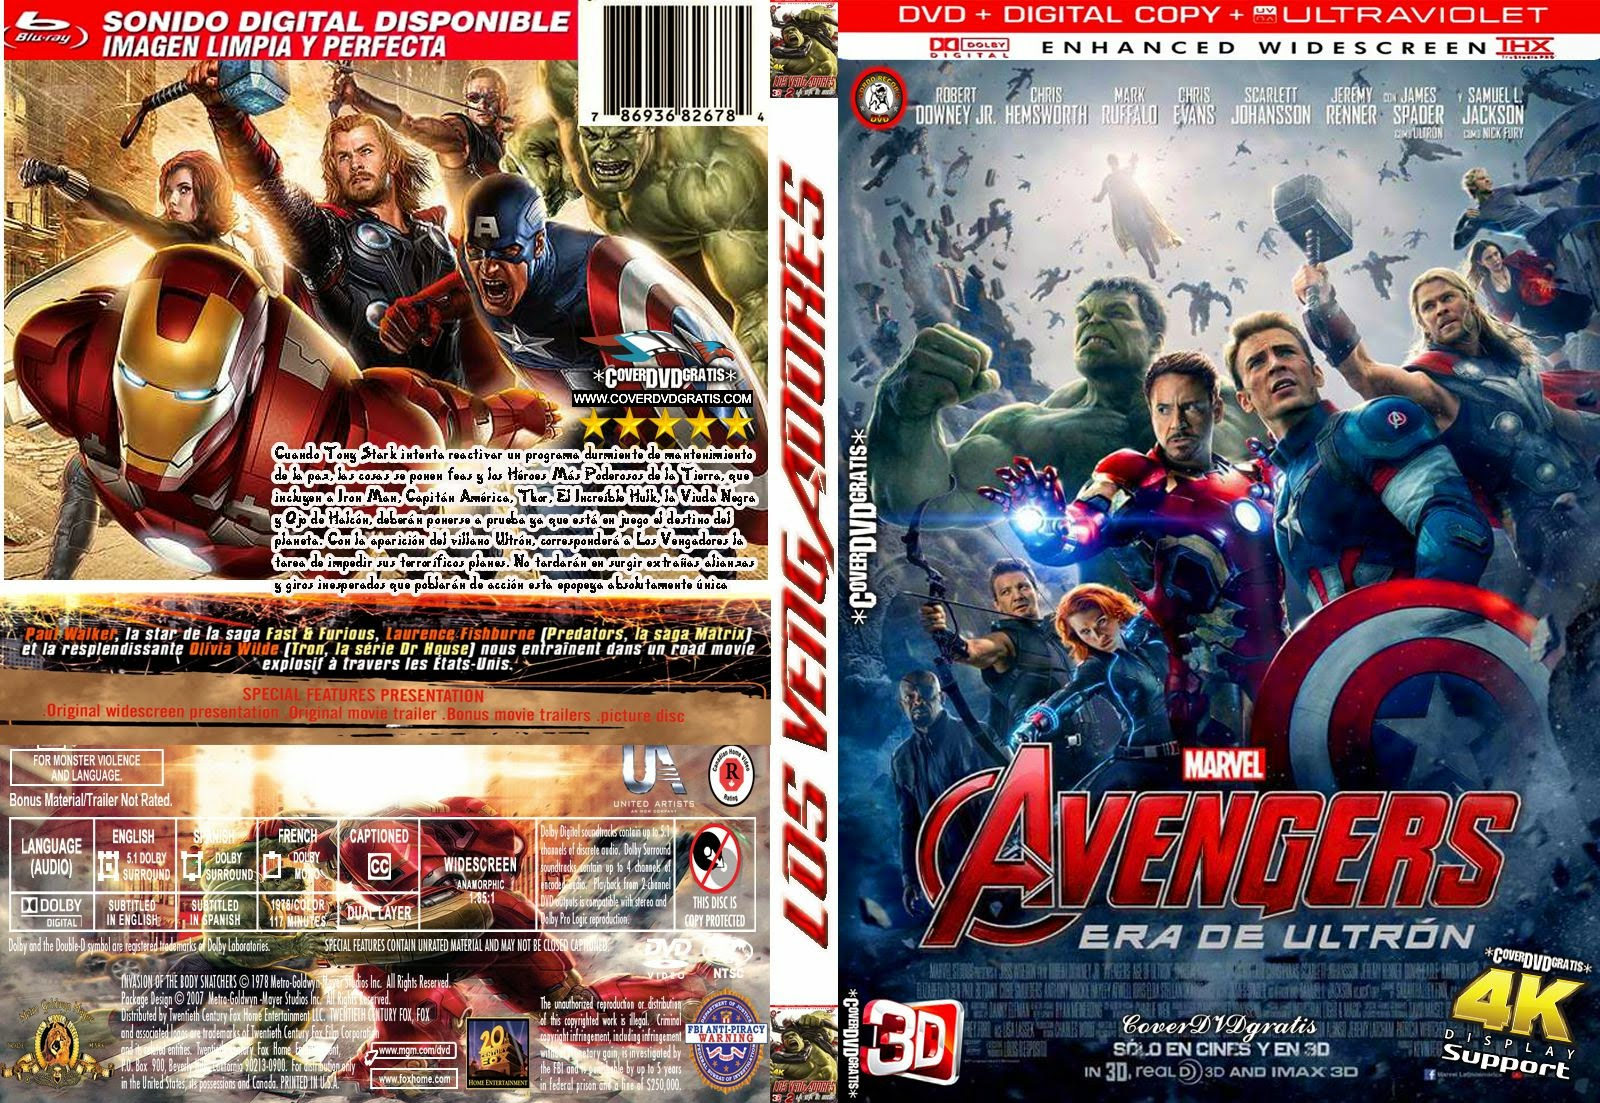 The avengers 2 dvd release date in Perth